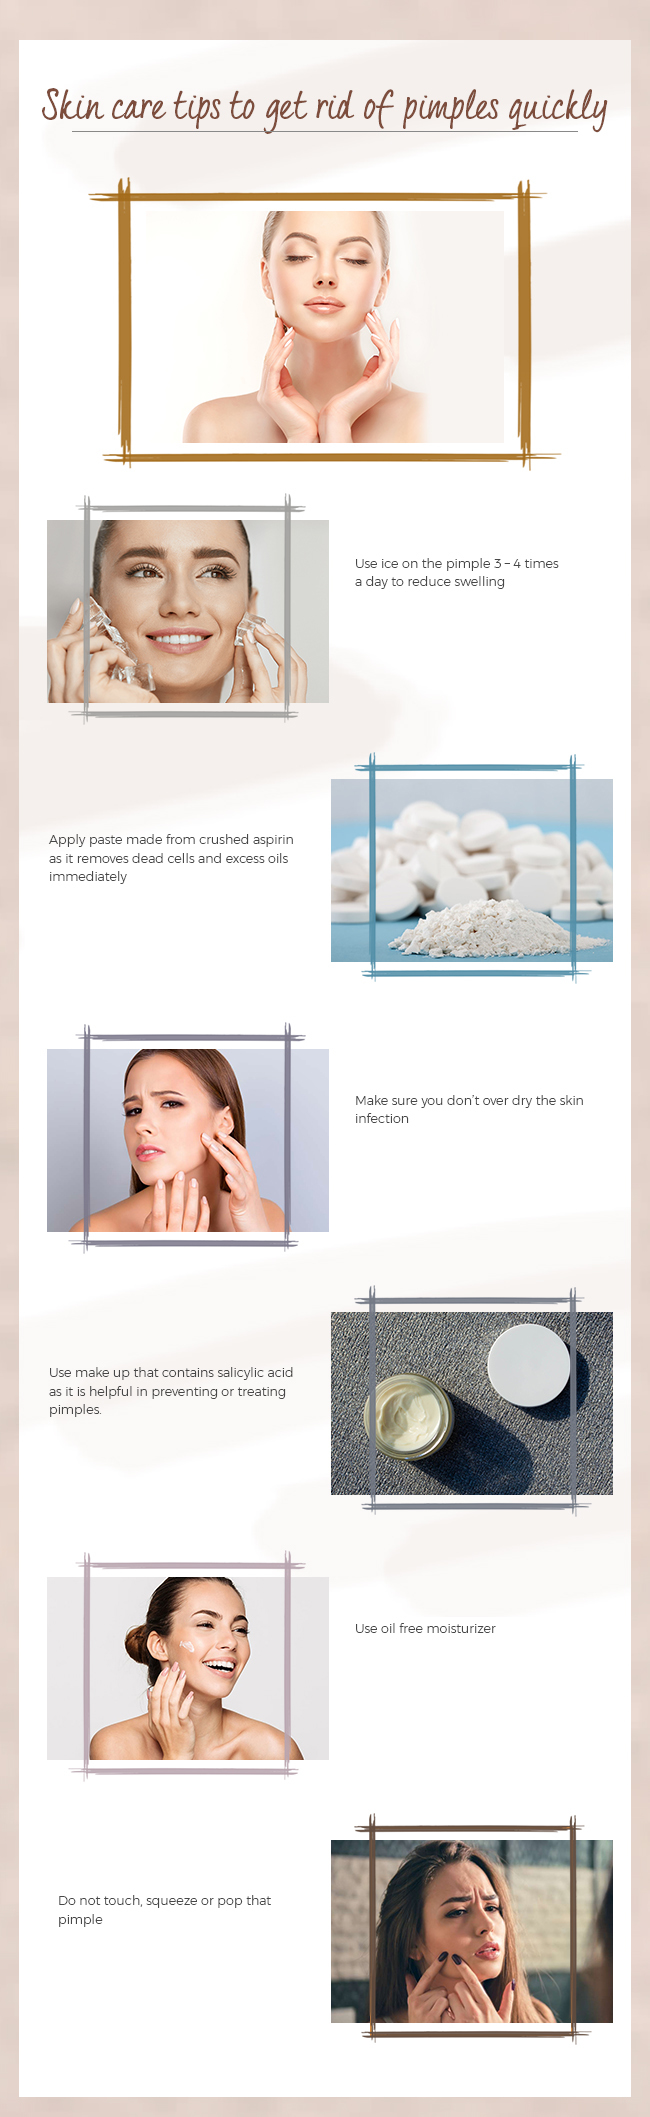 Skin-care-tips-get-rid-of-pimples-quickly